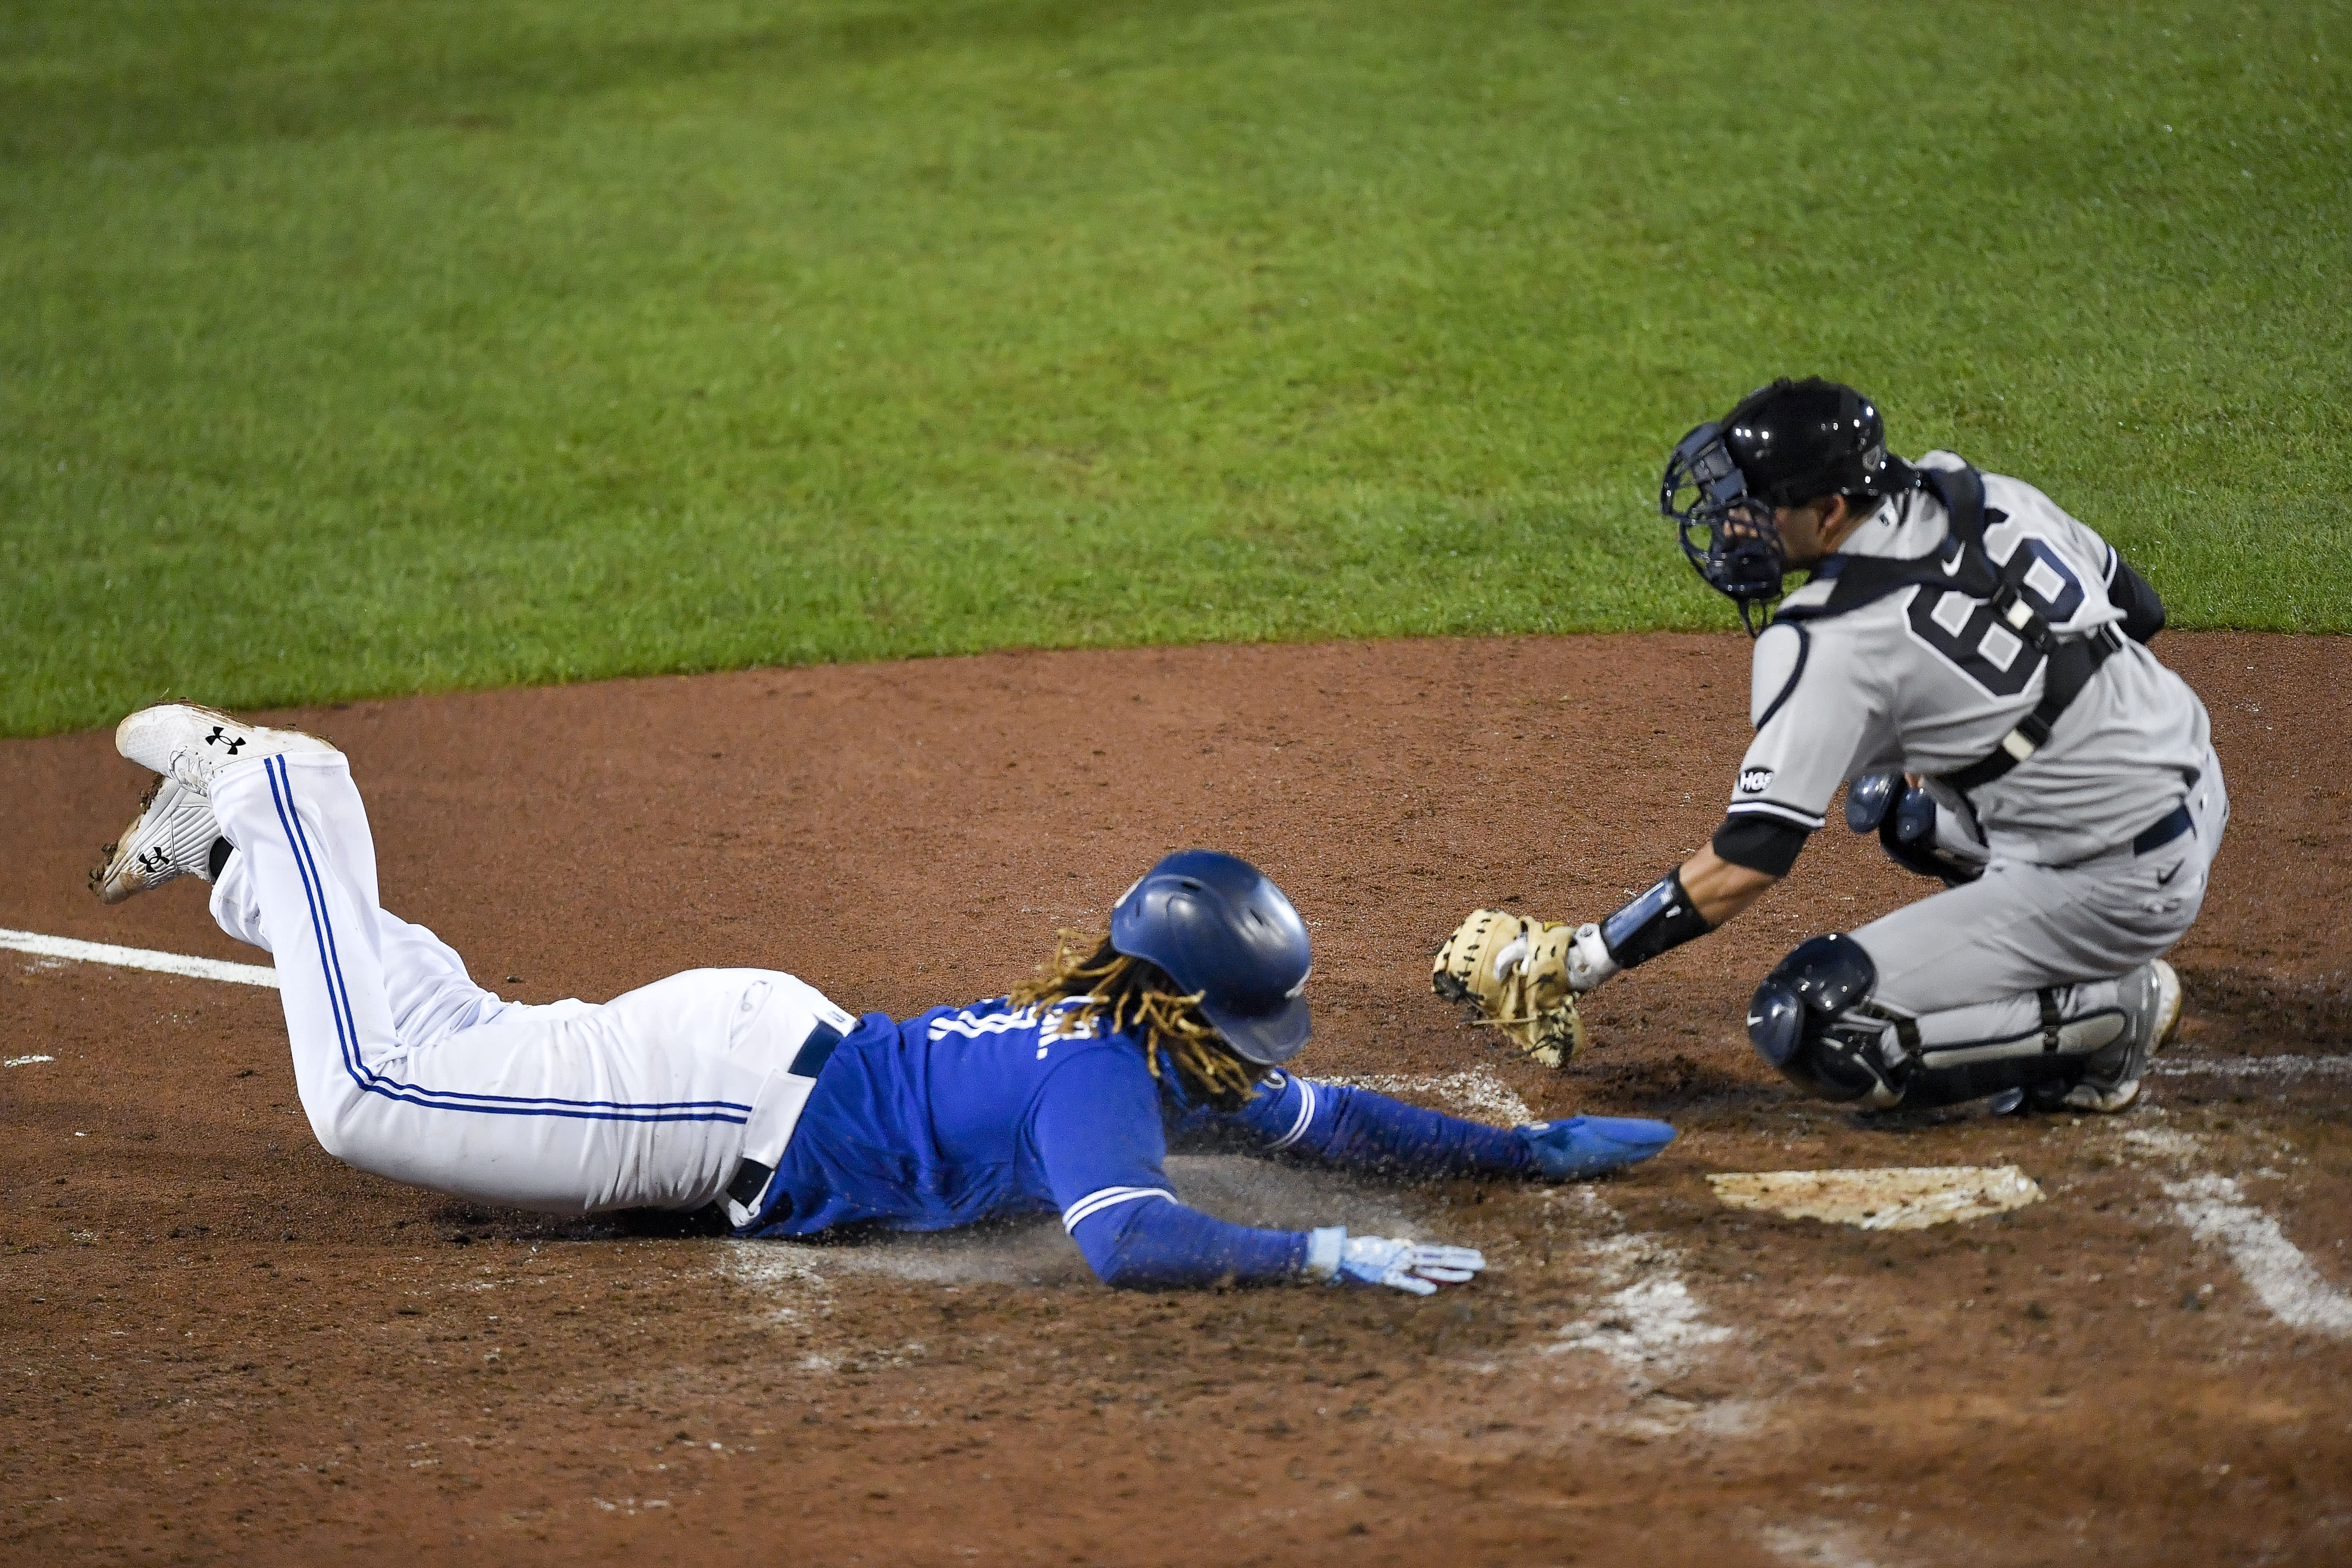 Toronto Blue Jays' Vladimir Guerrero Jr. scores as New York Yankees catcher Kyle Higashioka reaches to make a tag, on a double by Alejandro Kirk during the sixth inning of a baseball game in Buffalo, N.Y., Thursday, Sept. 24, 2020. (AP Photo/Adrian Kraus)